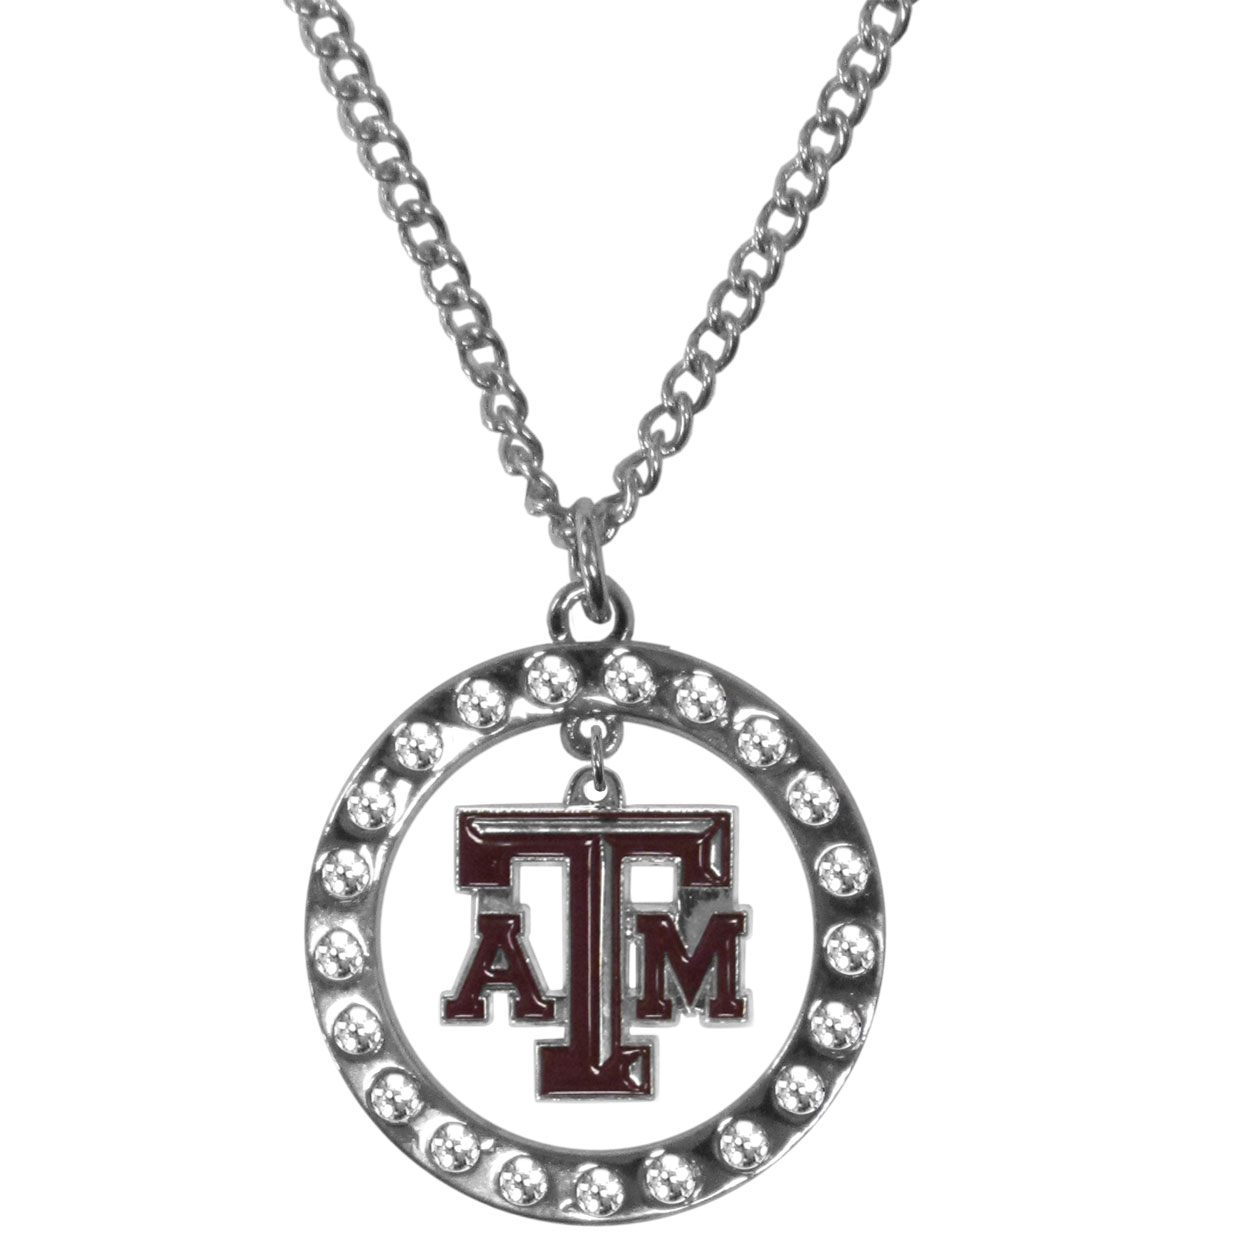 Texas A and M Aggies Rhinestone Hoop Necklaces - Our Texas A & M Aggies rhinestone hoop necklace comes on an 18 inch chain and features a hoop covered in rhinestones with a high polish chrome finish and a cast and enameled team charm dangling in the center.